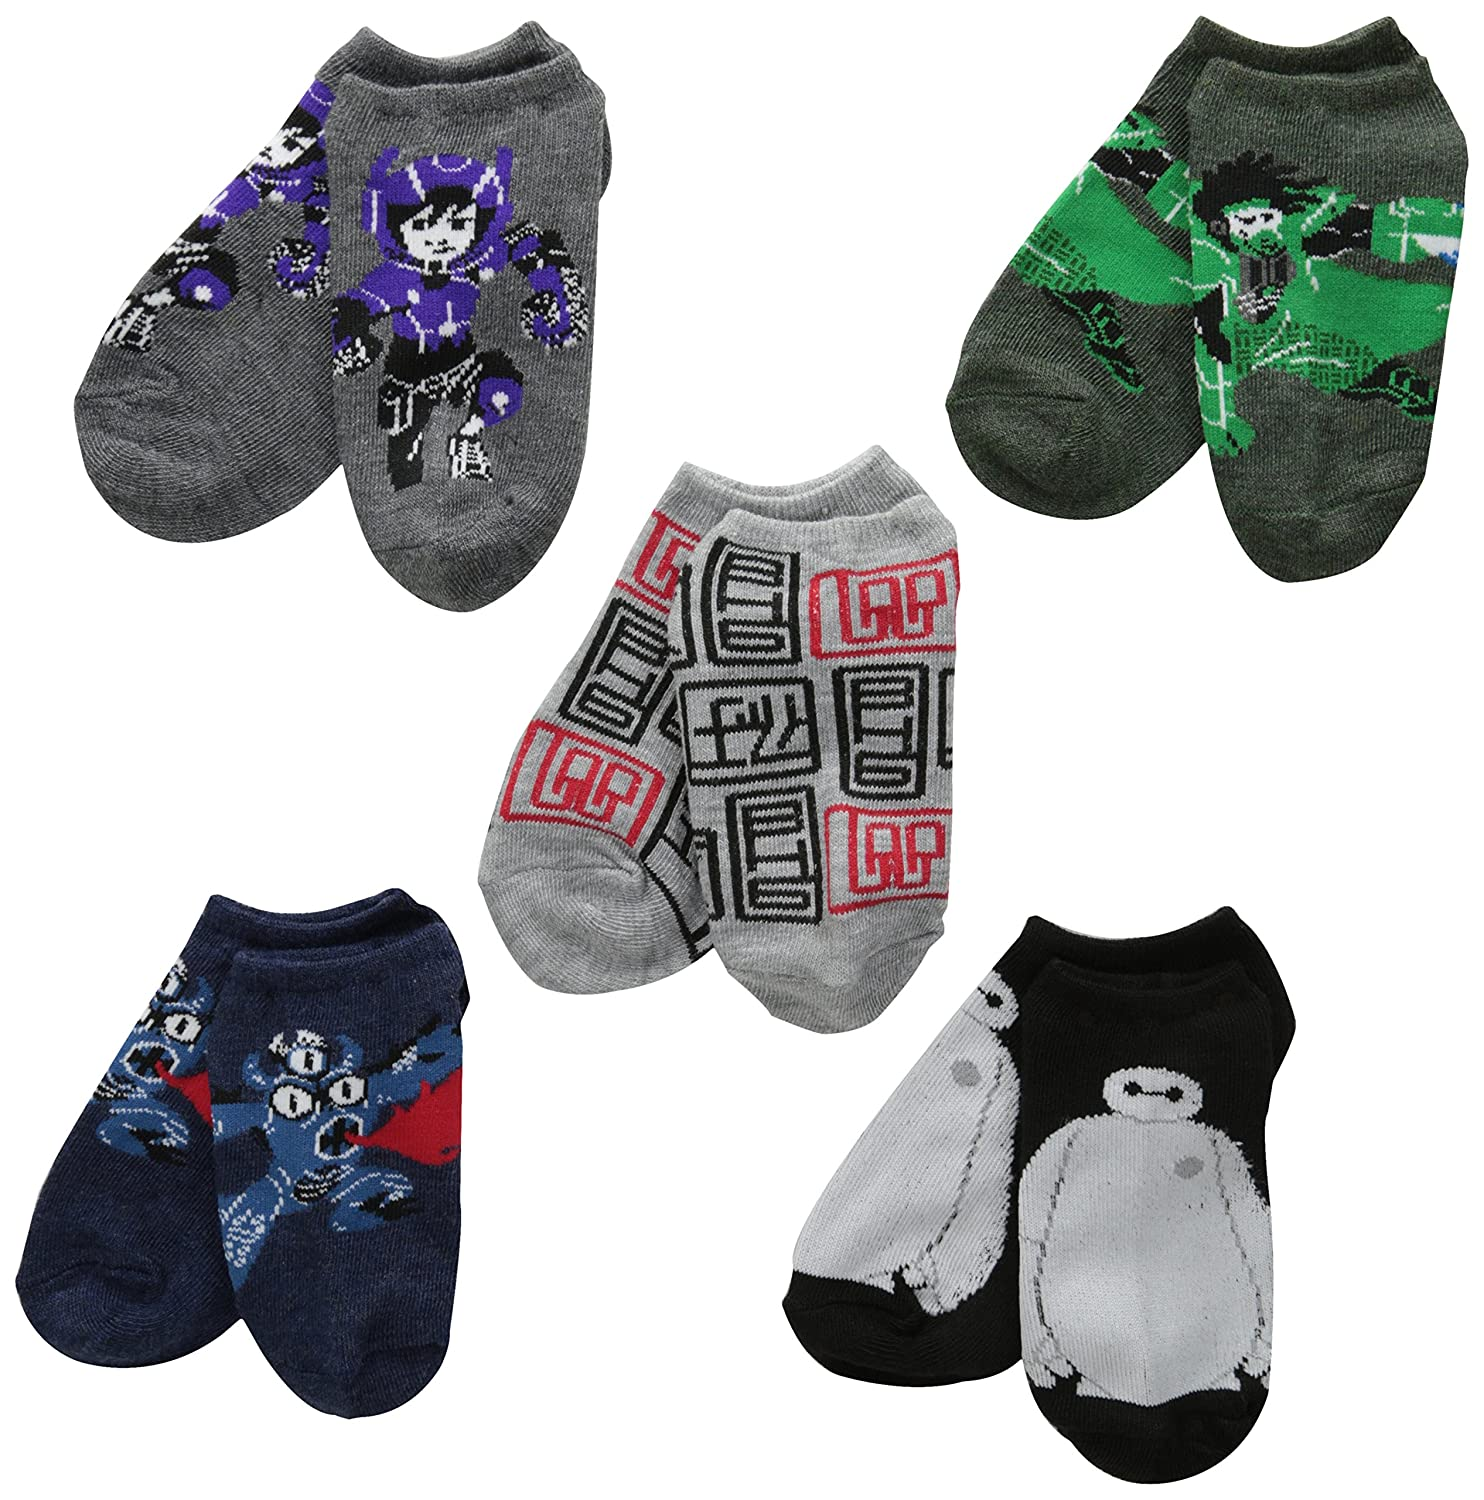 Disney Little Boys' 5 Pack Big Hero 6 No-Show Socks Assorted One Size/6-8.5 41440020H60